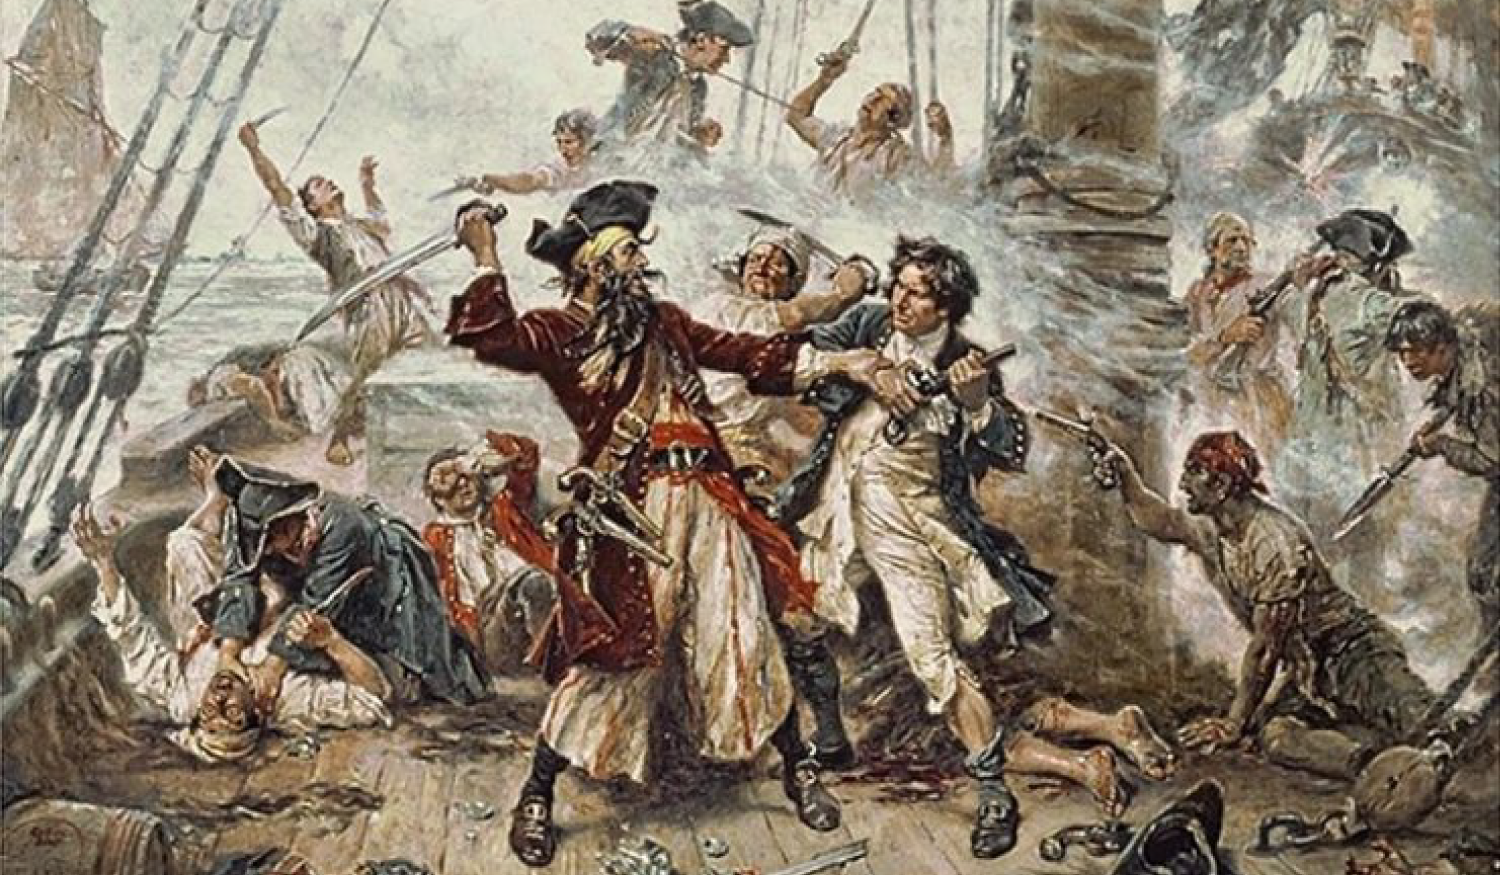 A painting depicting the death of infamous pirate Blackbeard